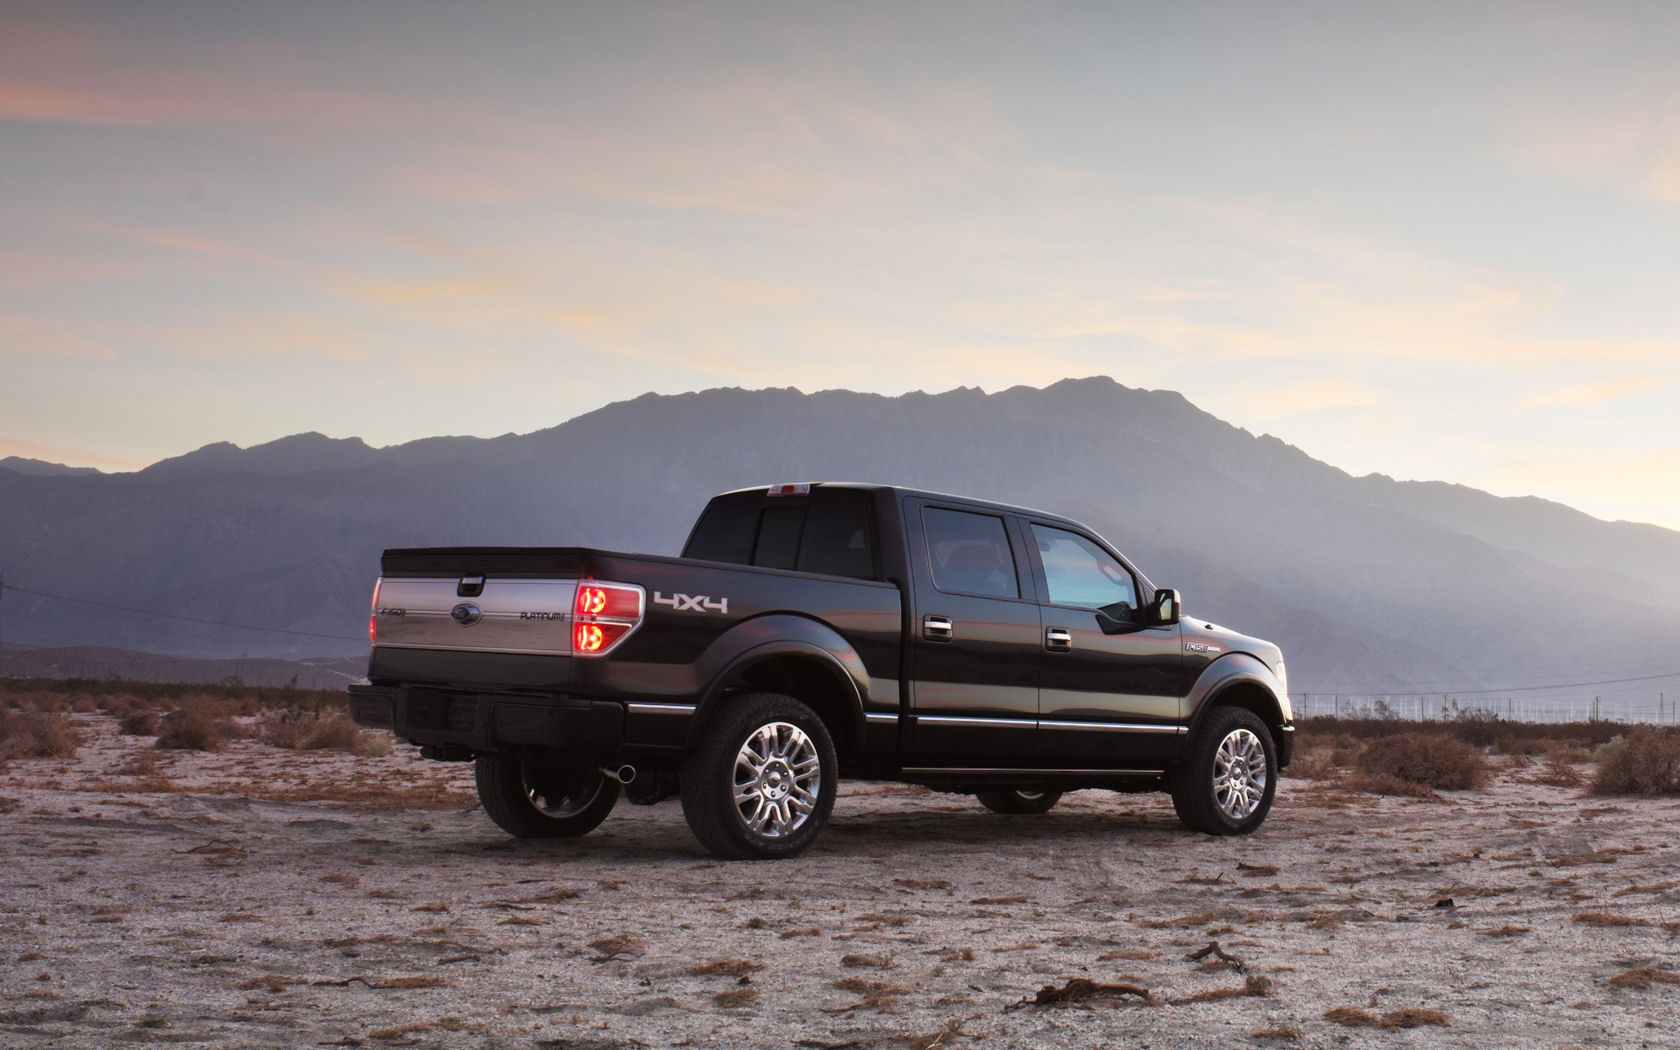 Ford F150 Xlt Stx Lariat Fx4 V8 Awd Free Widescreen Wallpaper